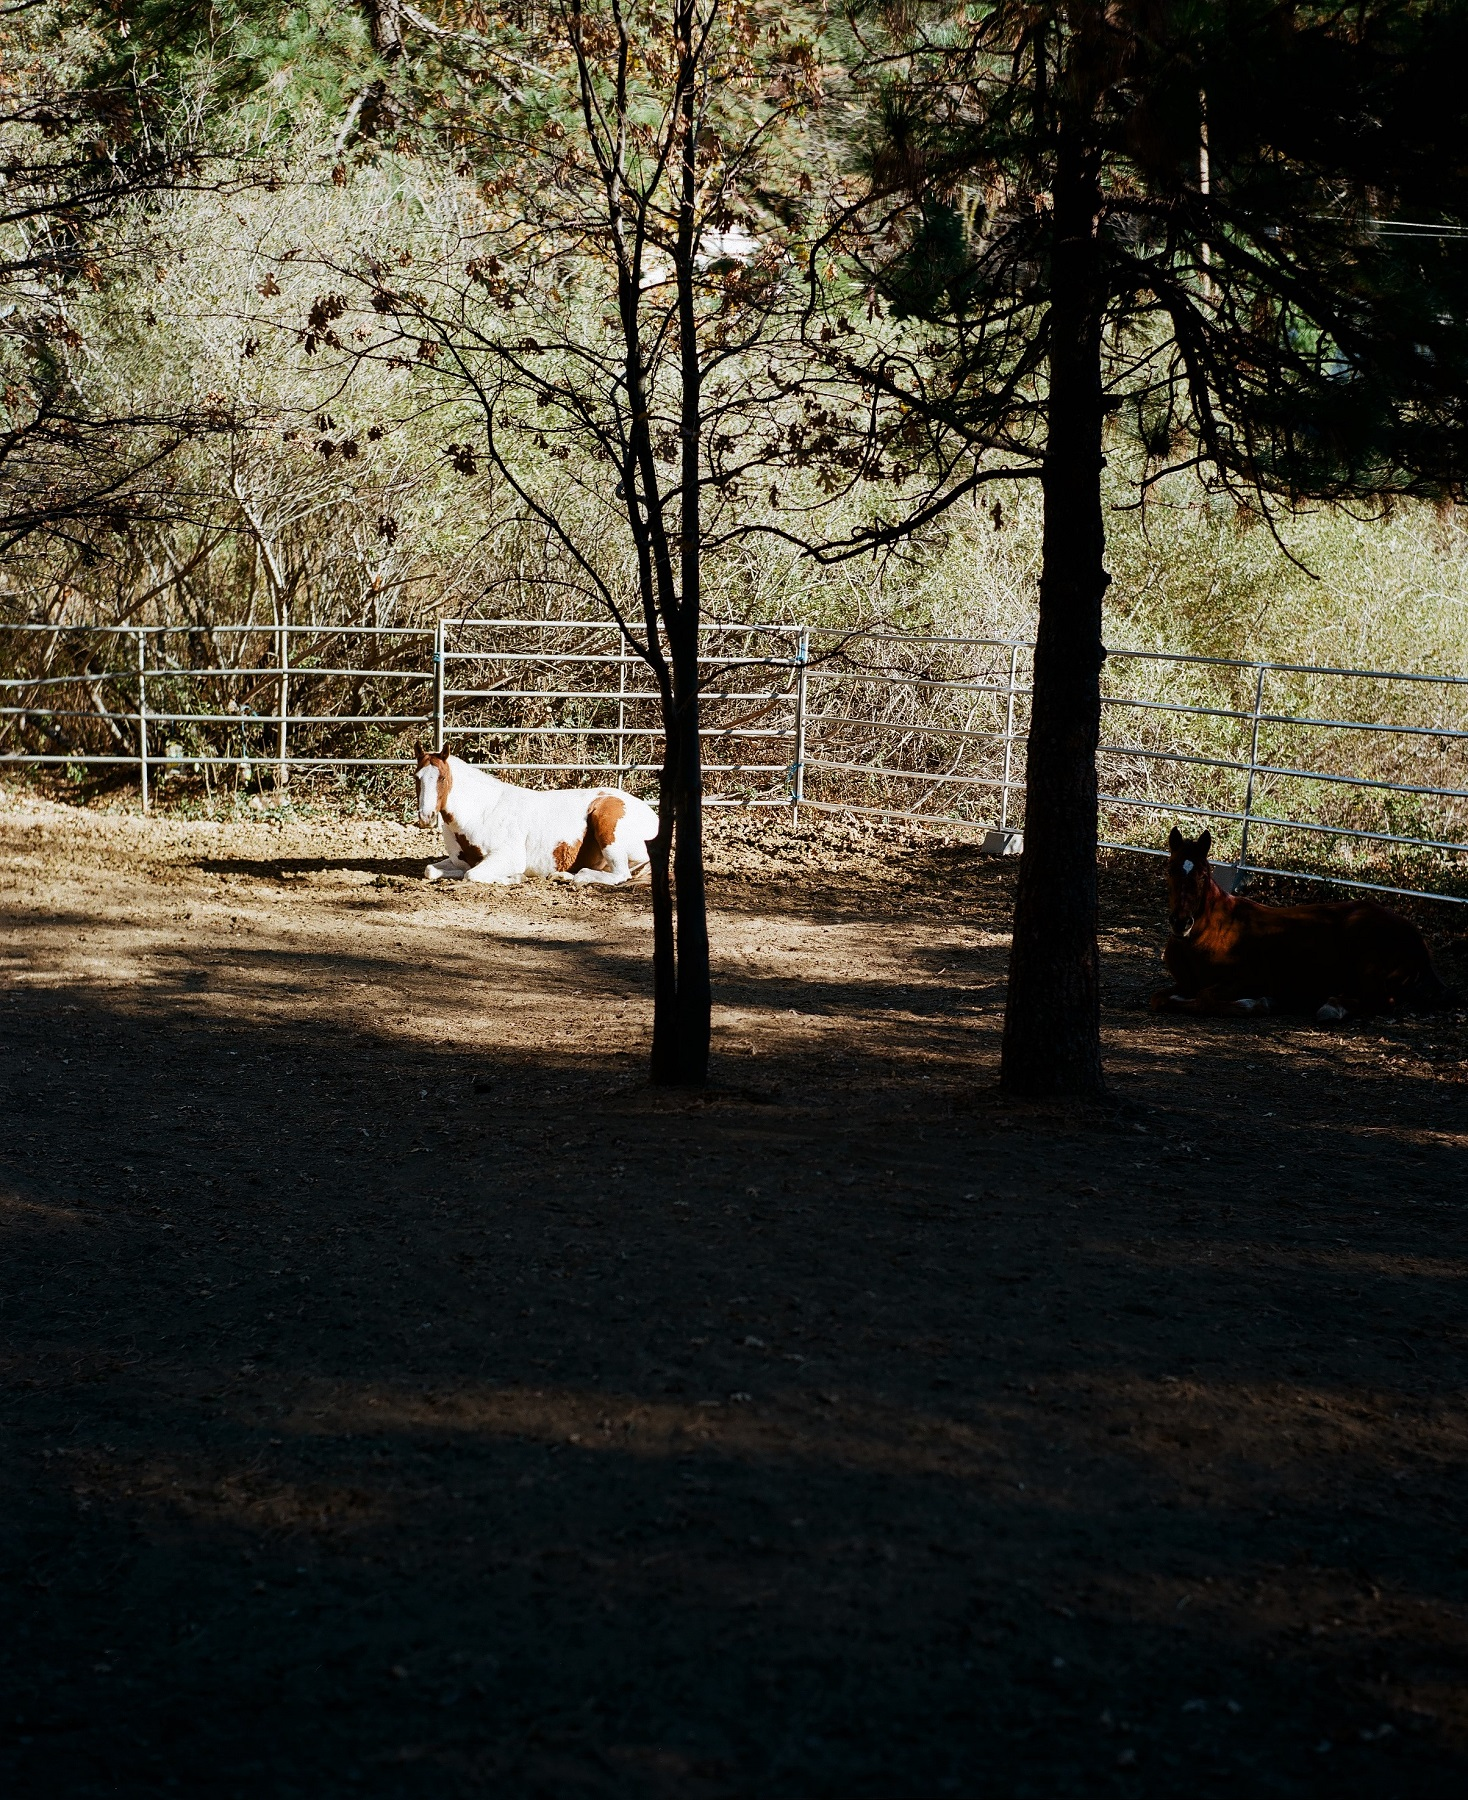 Crestline, California_Mamiya Super 23, 3.5f=100m_Kyle Everett Smith_13.jpg